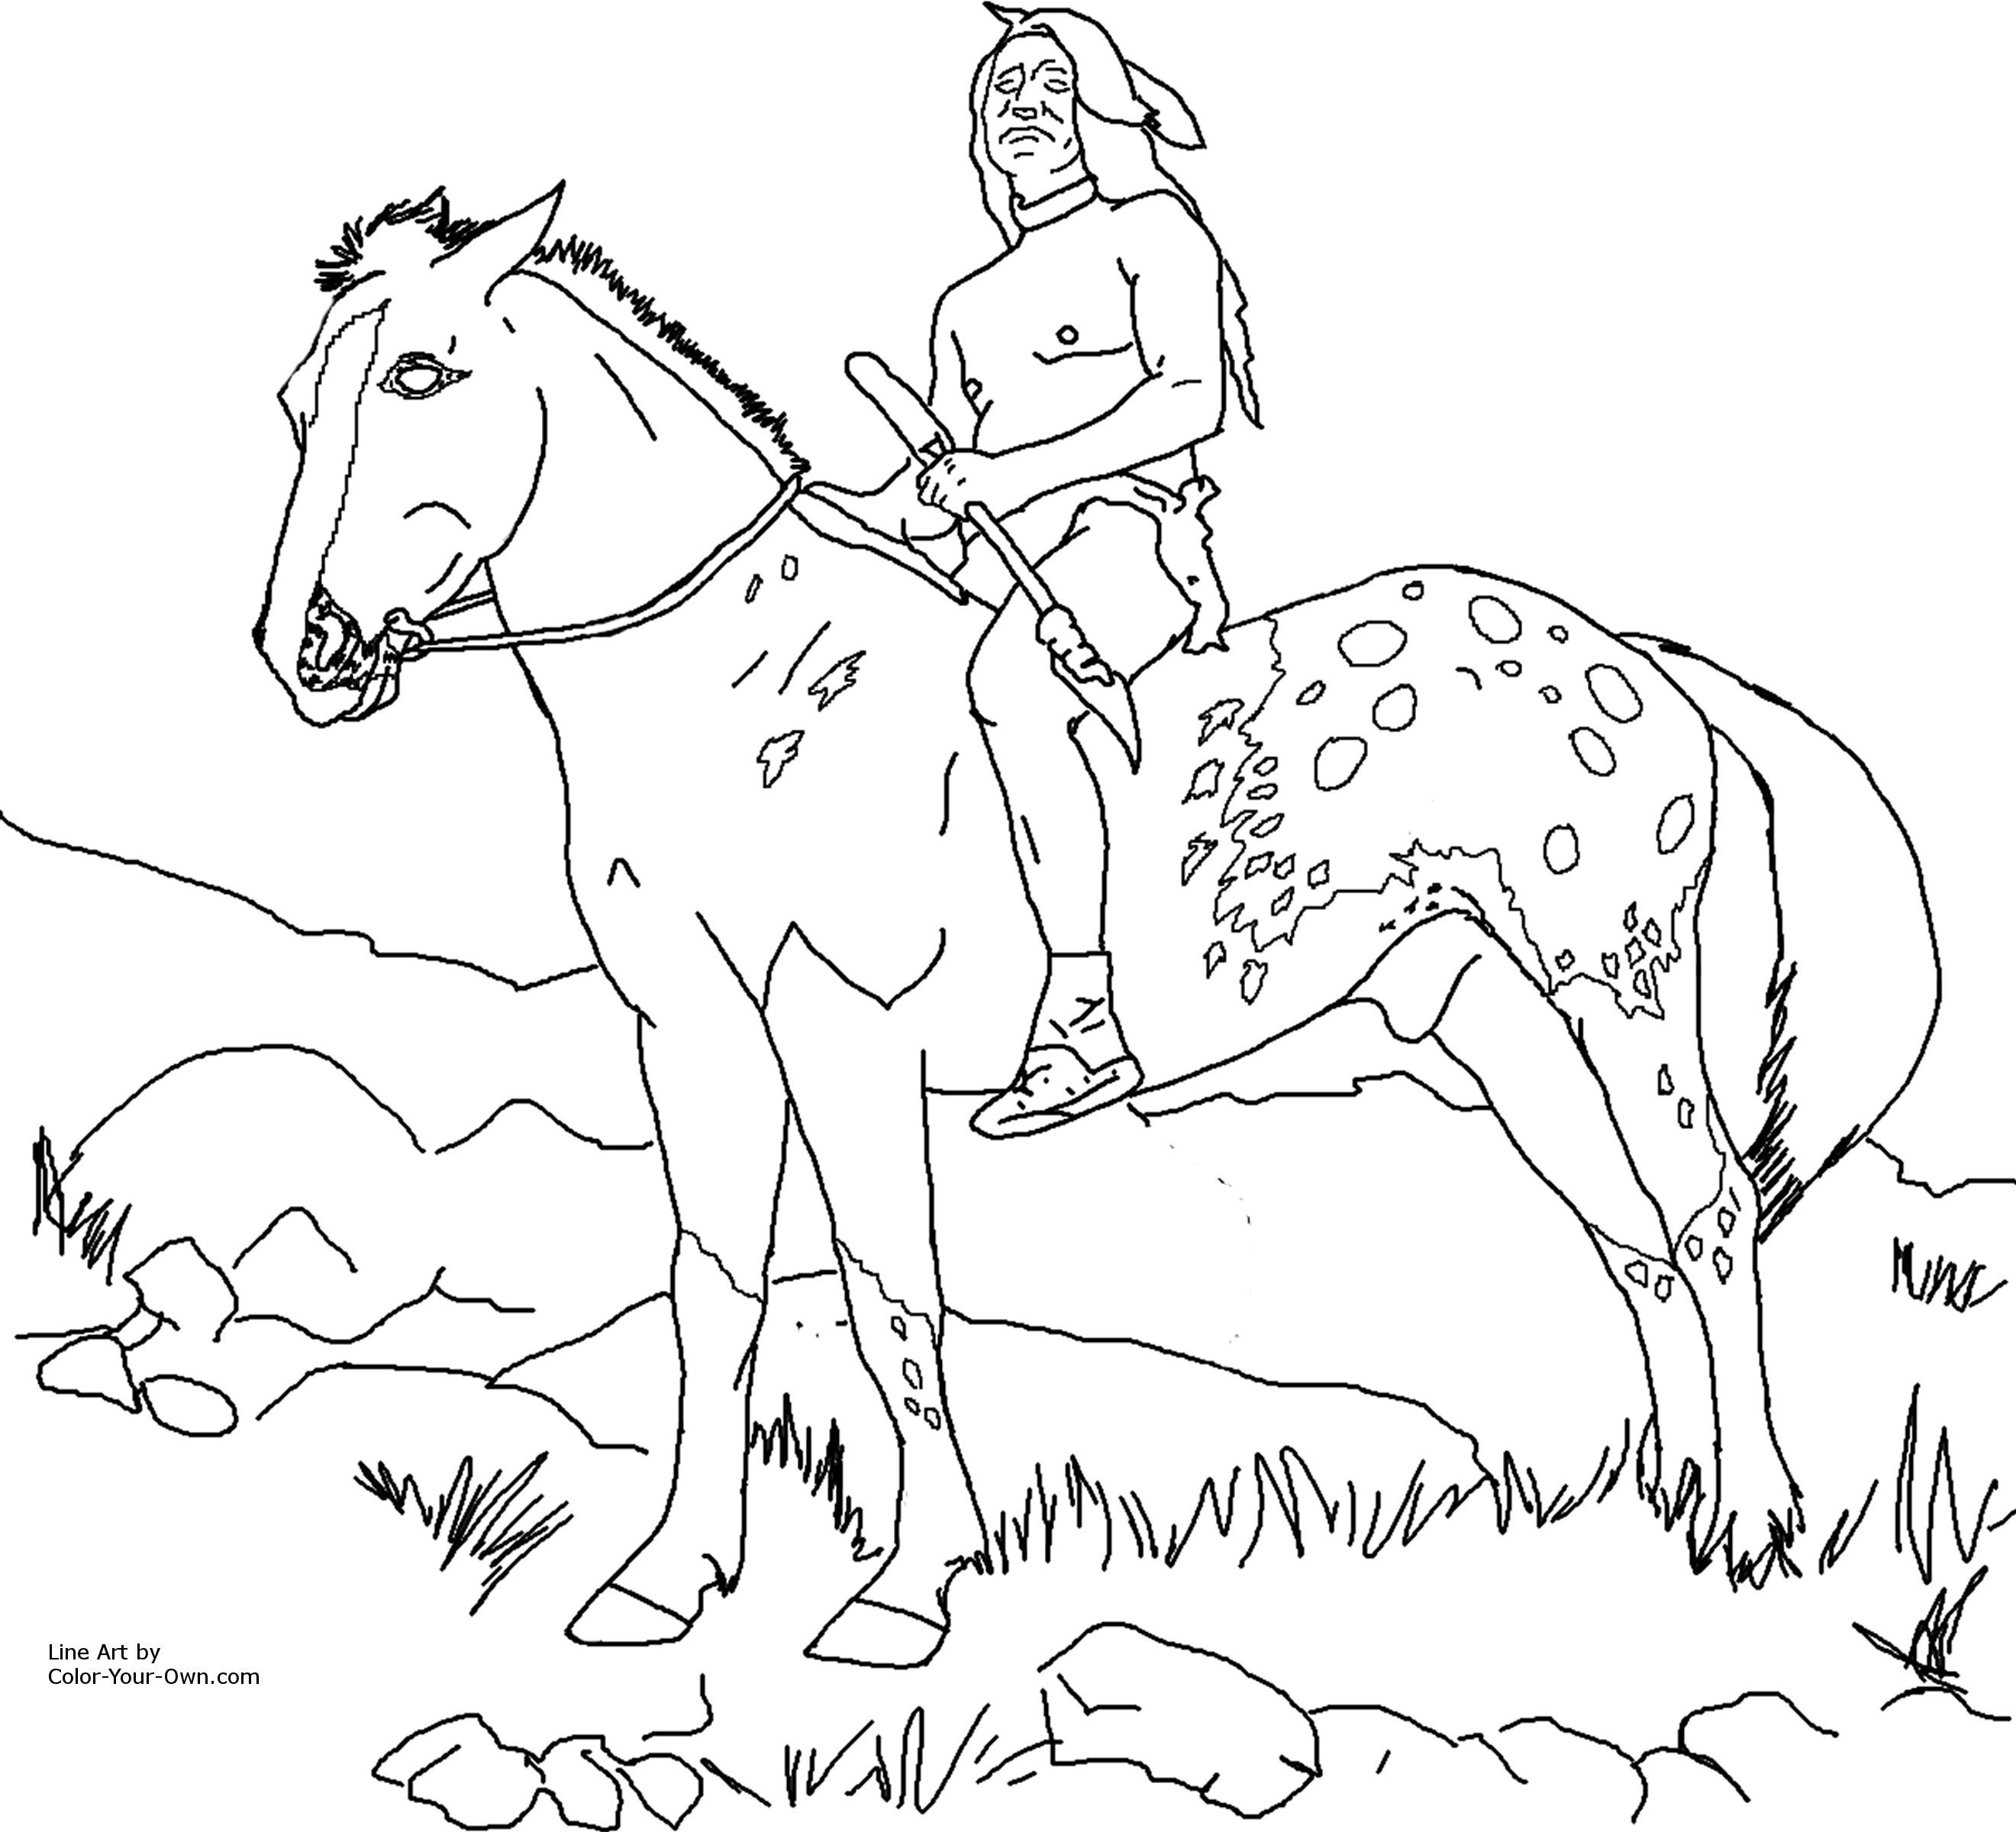 coloring sheet native american native american coloring page coloring pages for kids and for adults